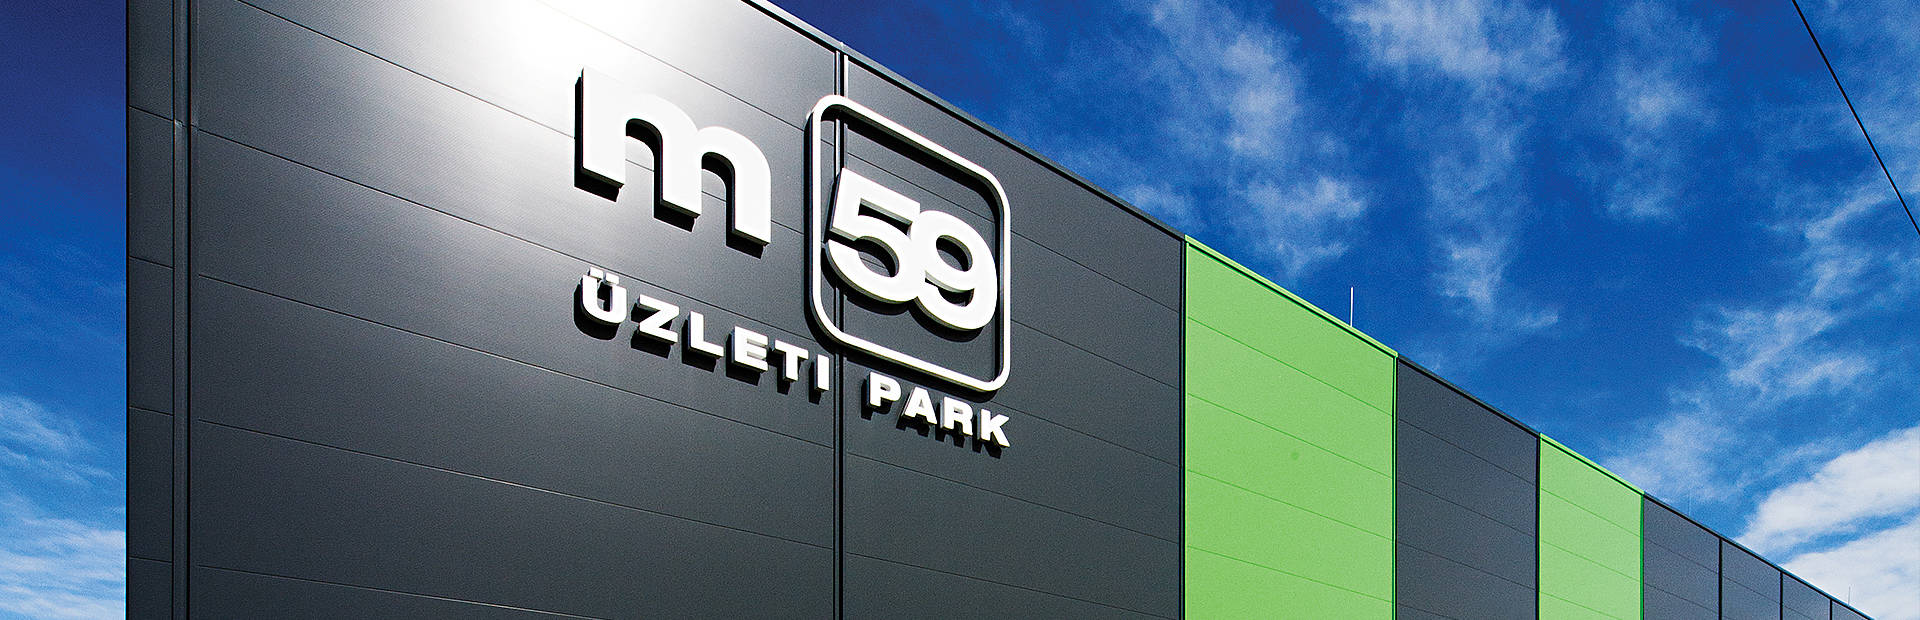 Trimoterm panels on business park m59 in Hungary.